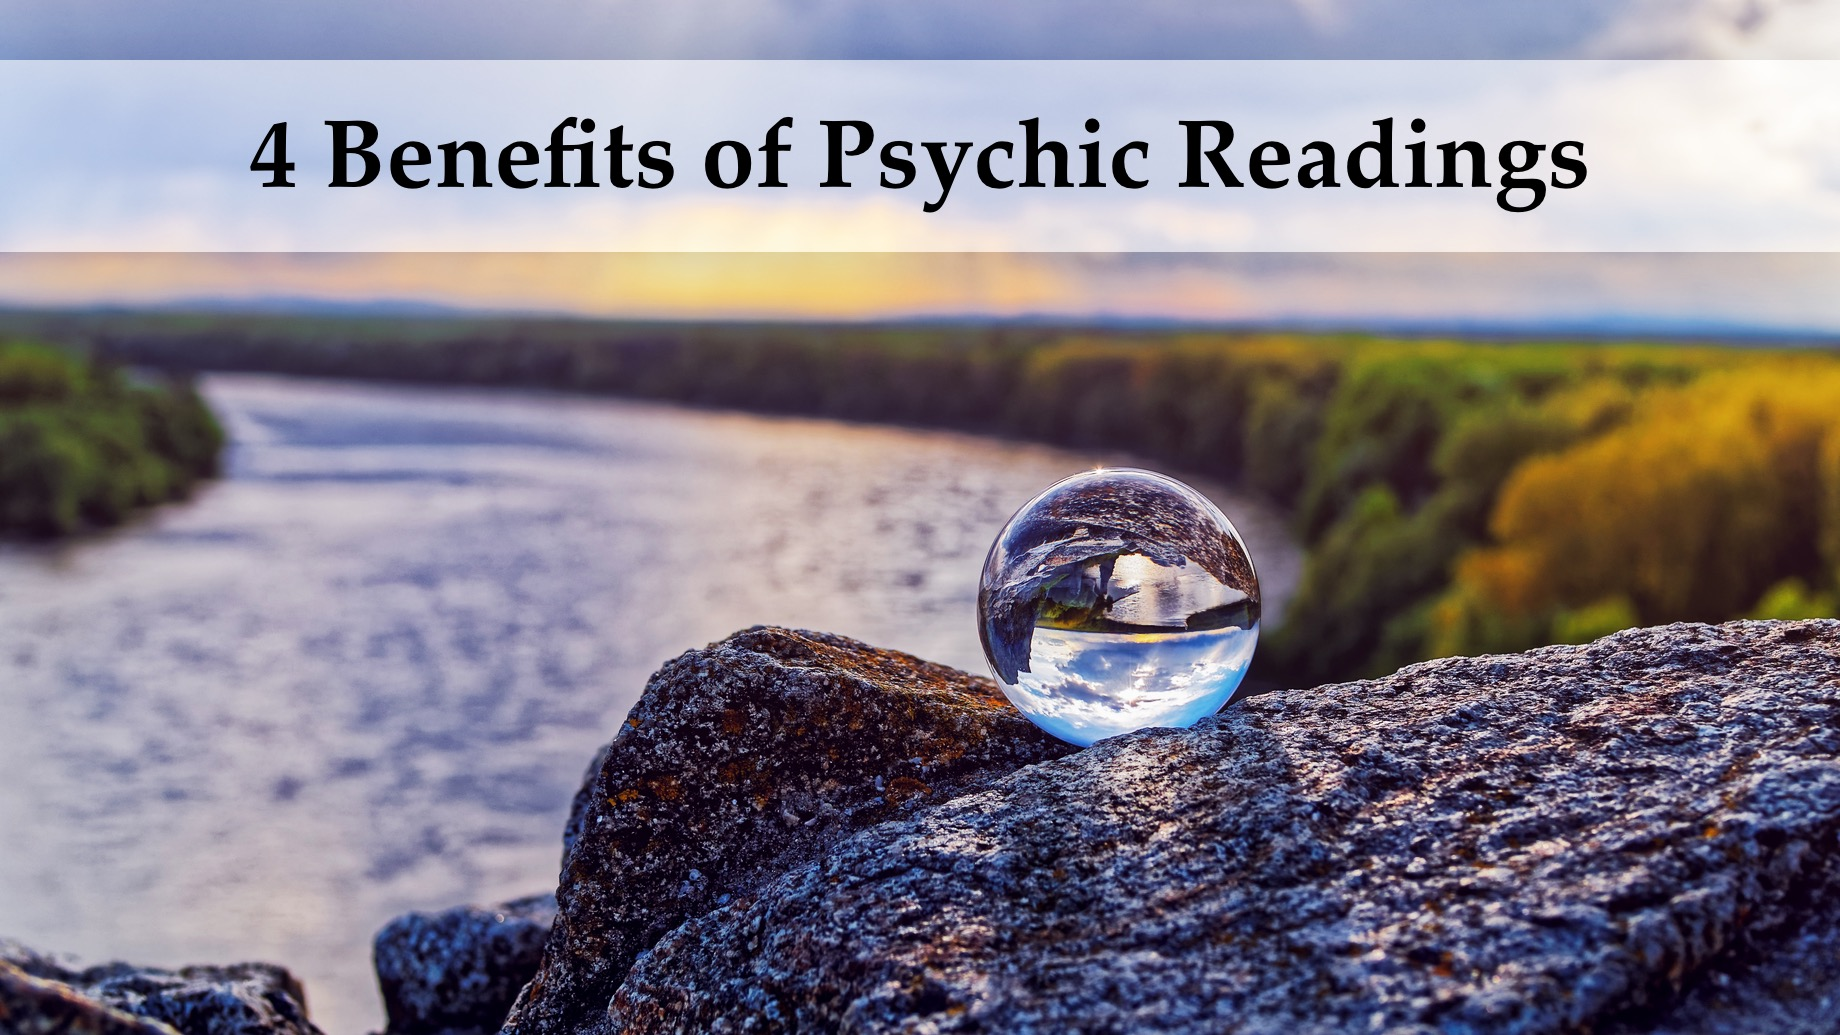 4 Benefits of Psychic Readings